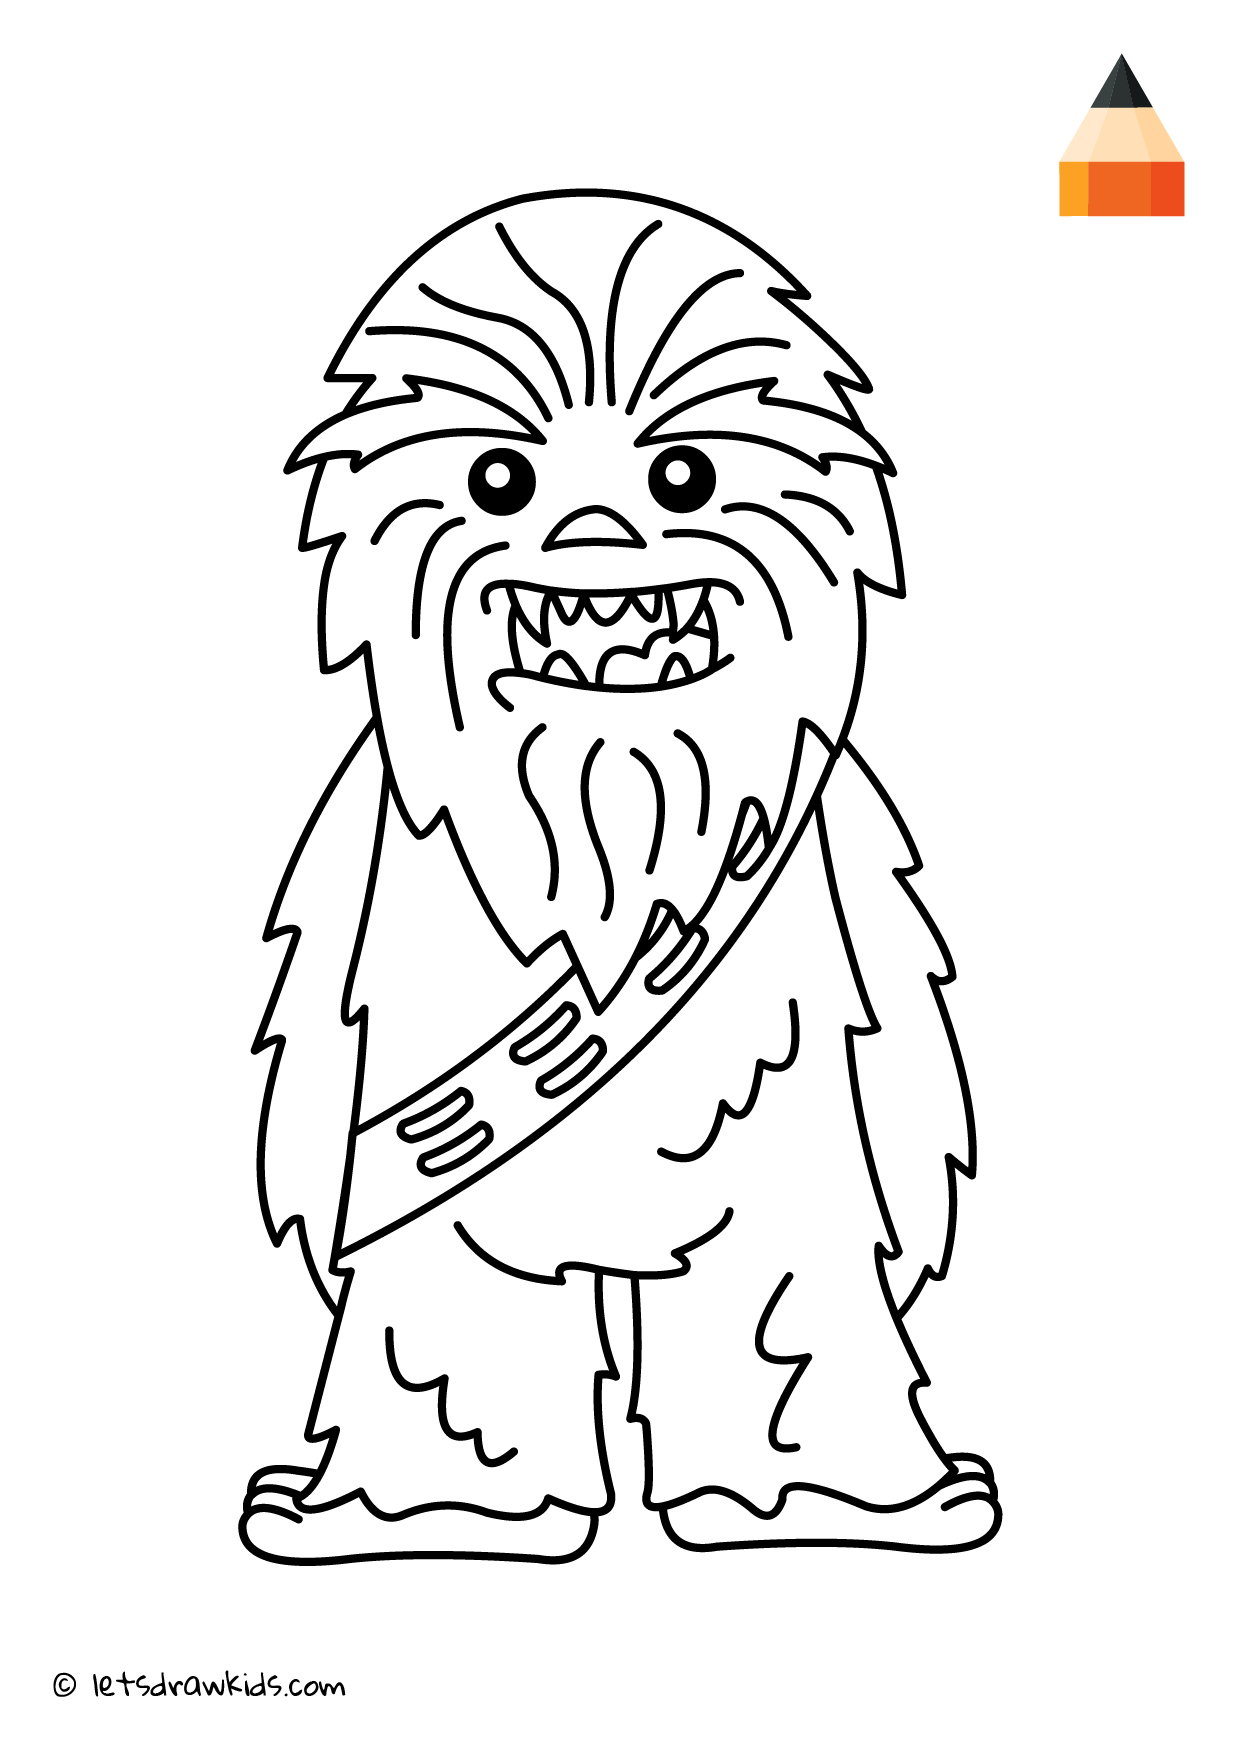 Coloring Page - Chewbacca | Coloring pages | let\'s draw kids ...